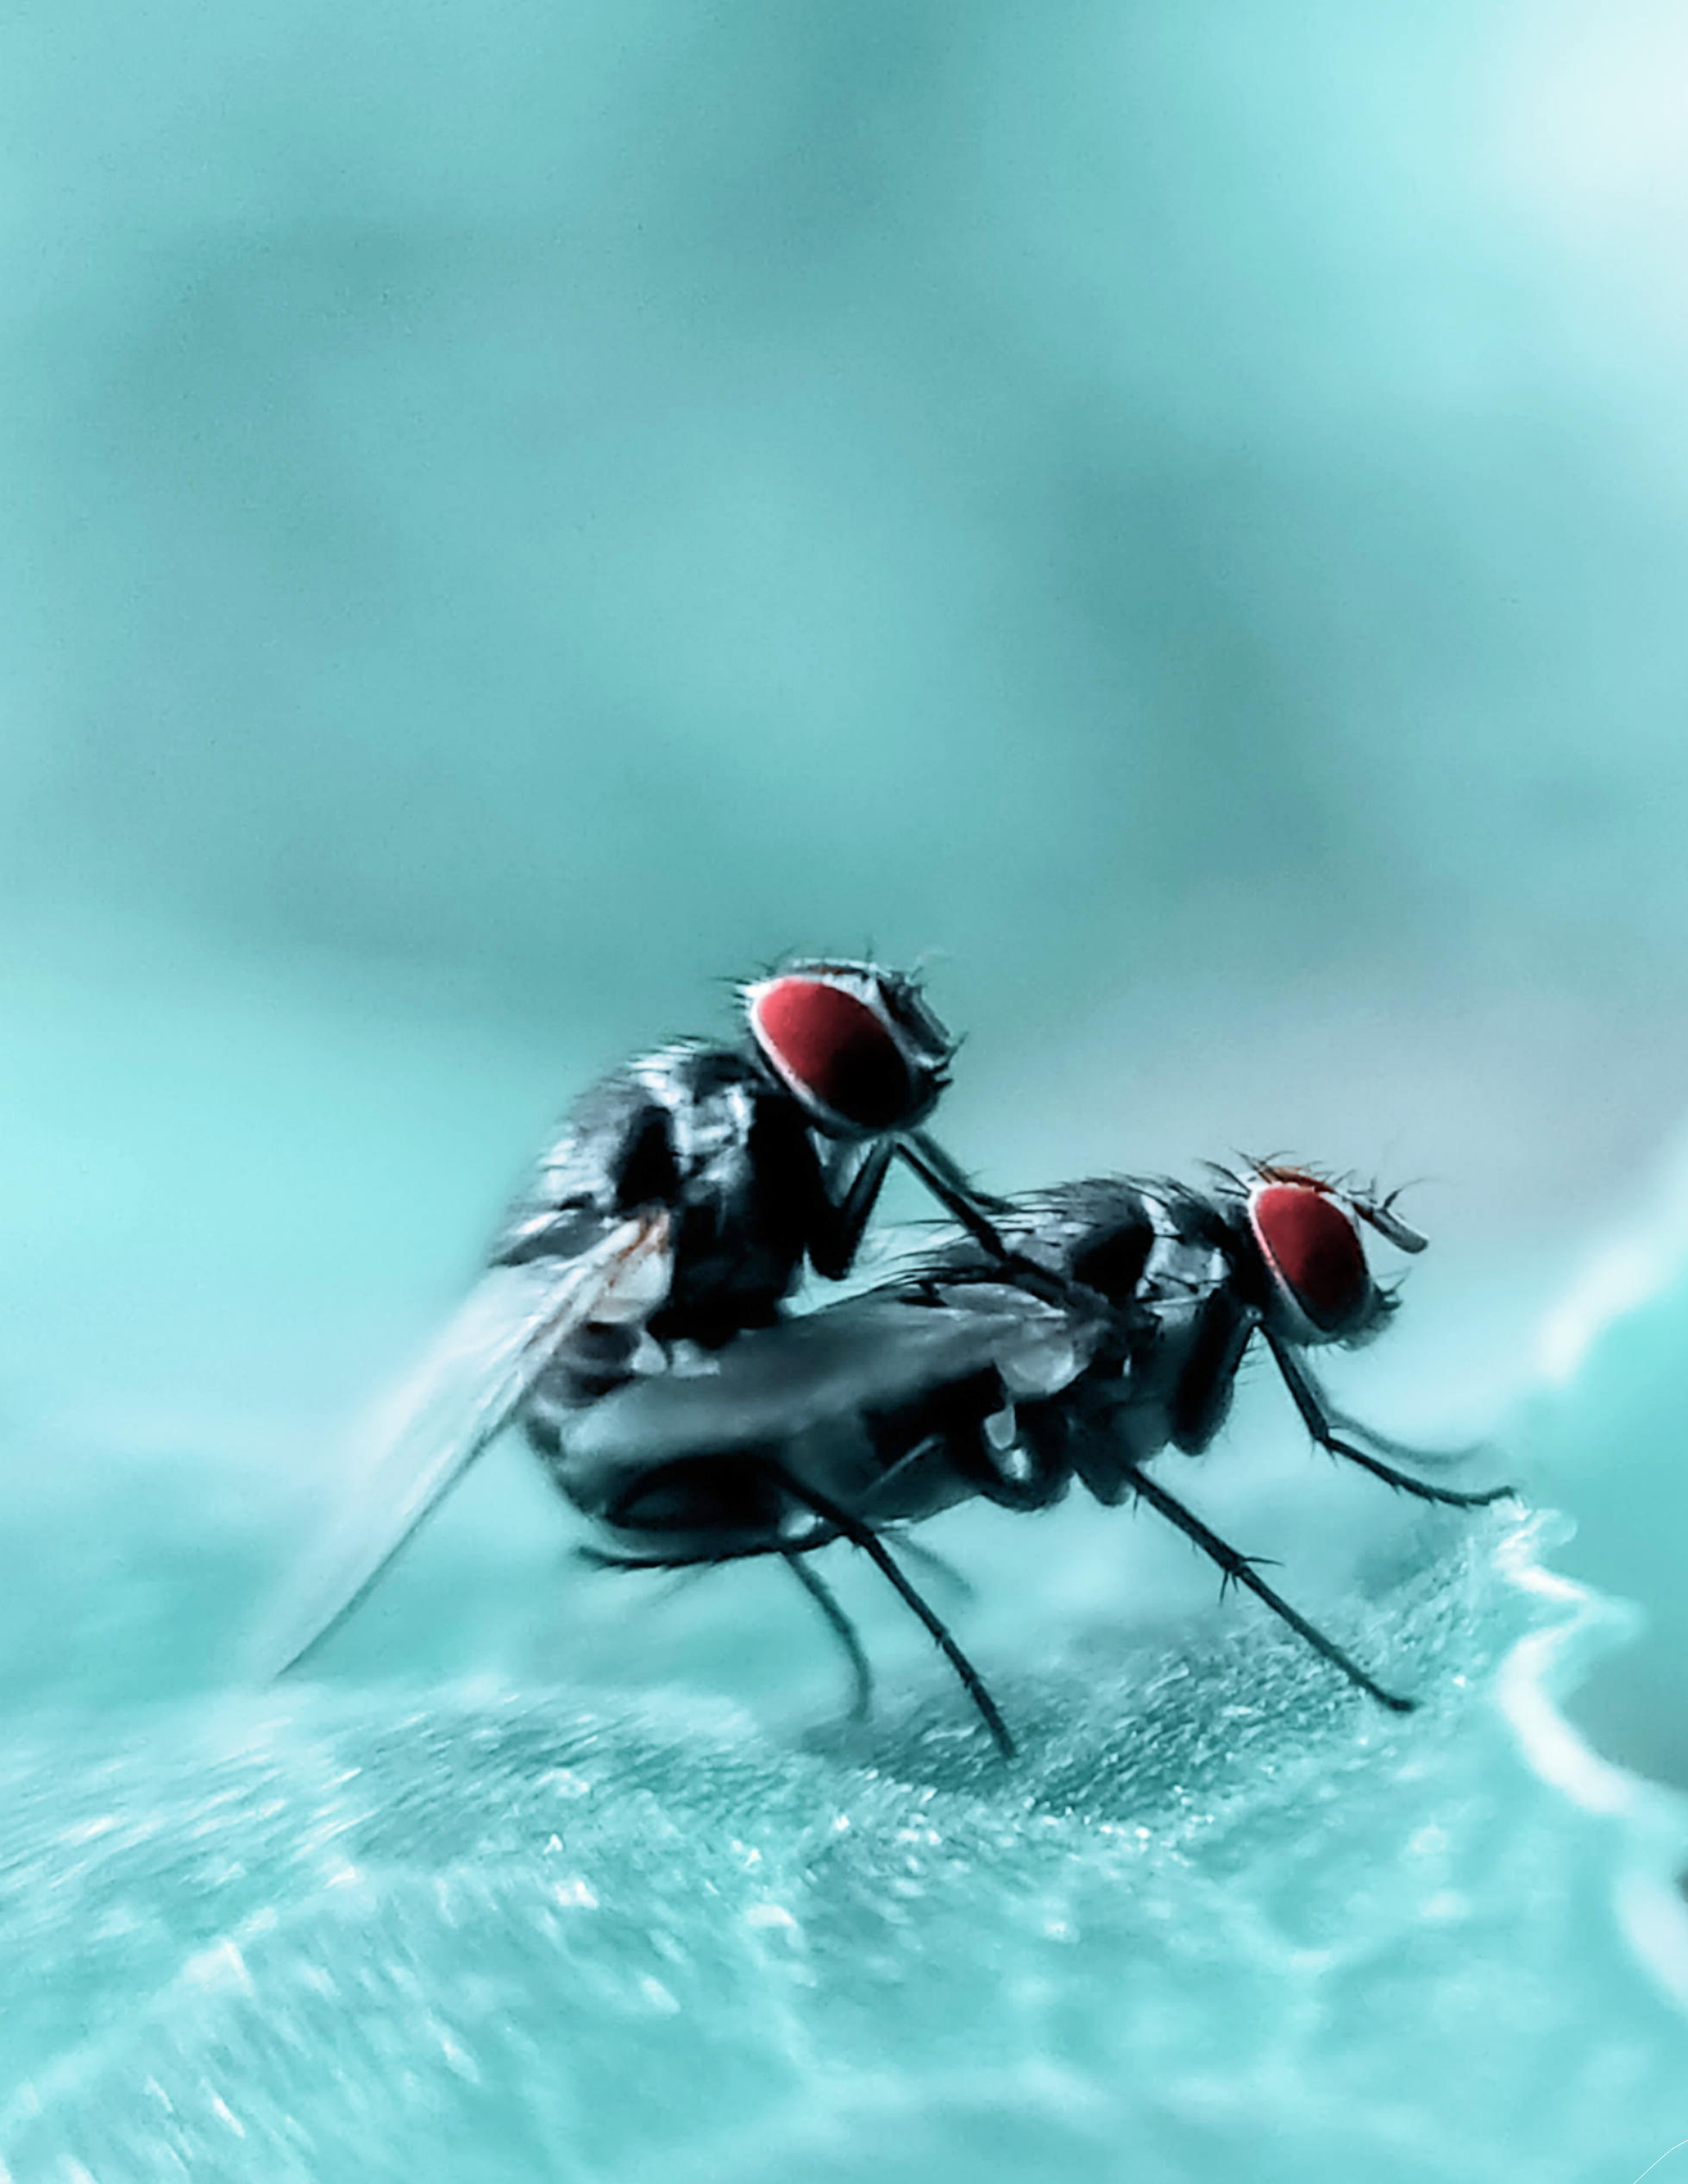 A pair of insects